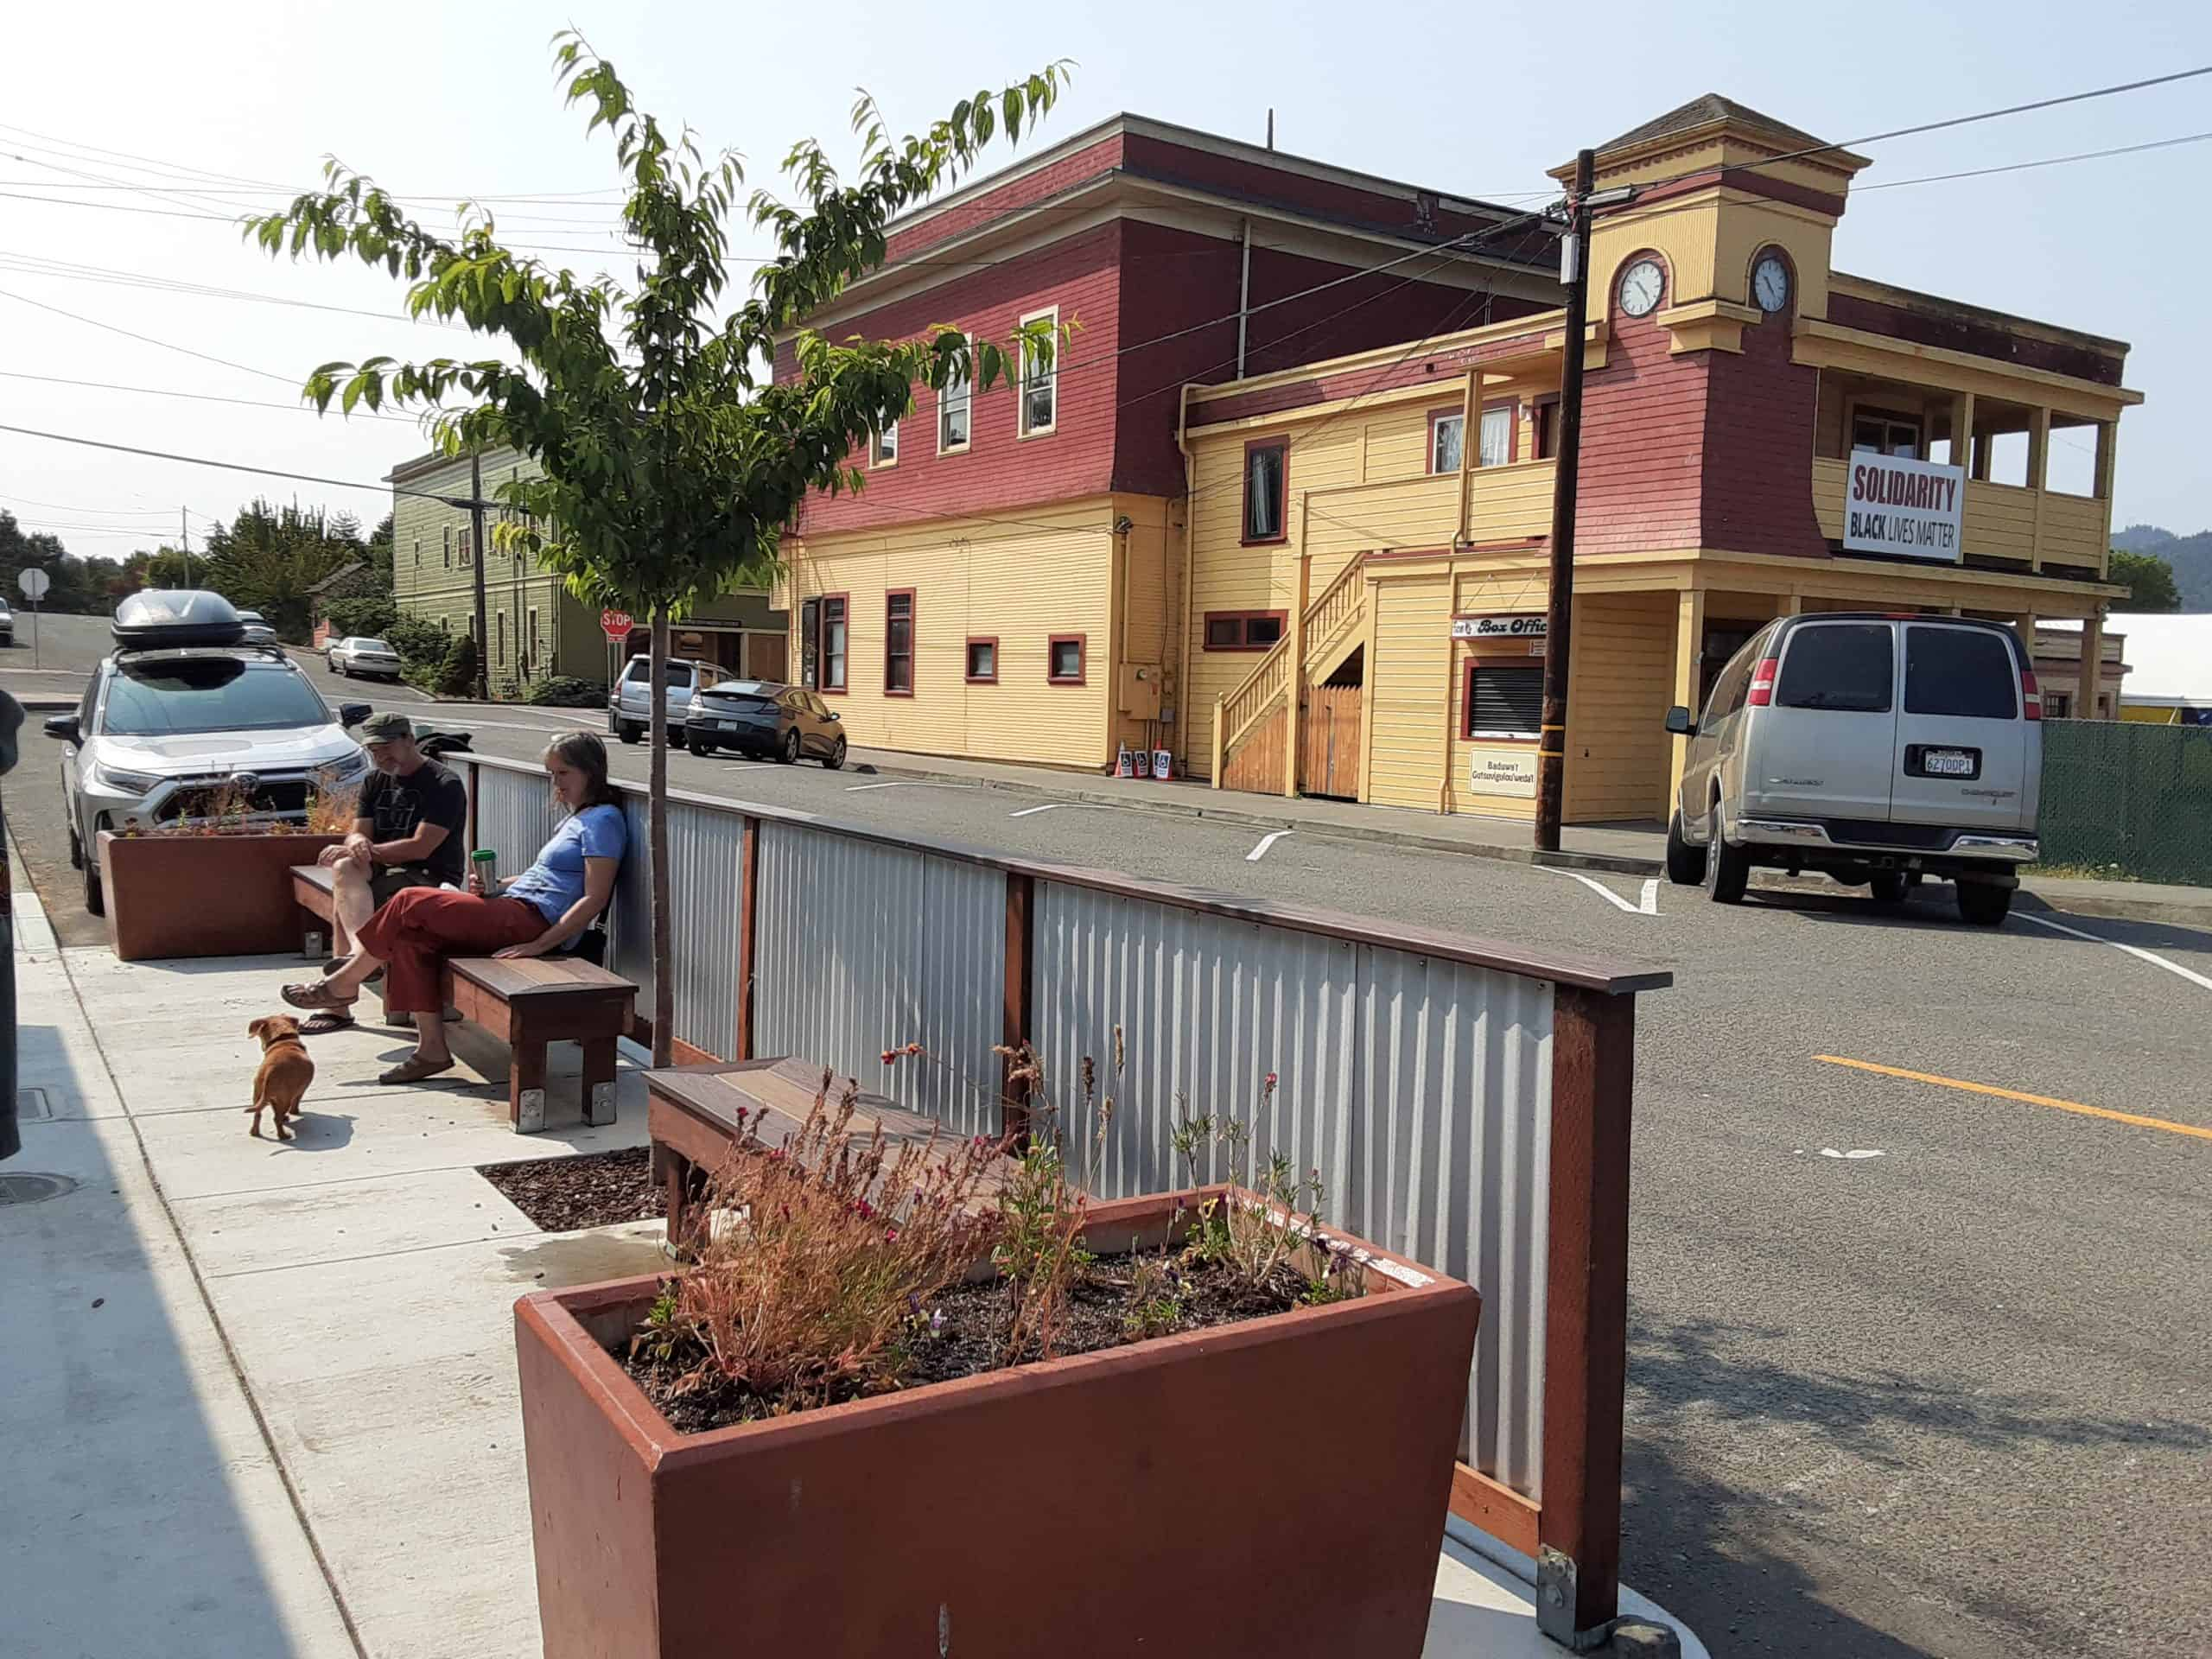 Outdoor seating at Honeycomb Coffee